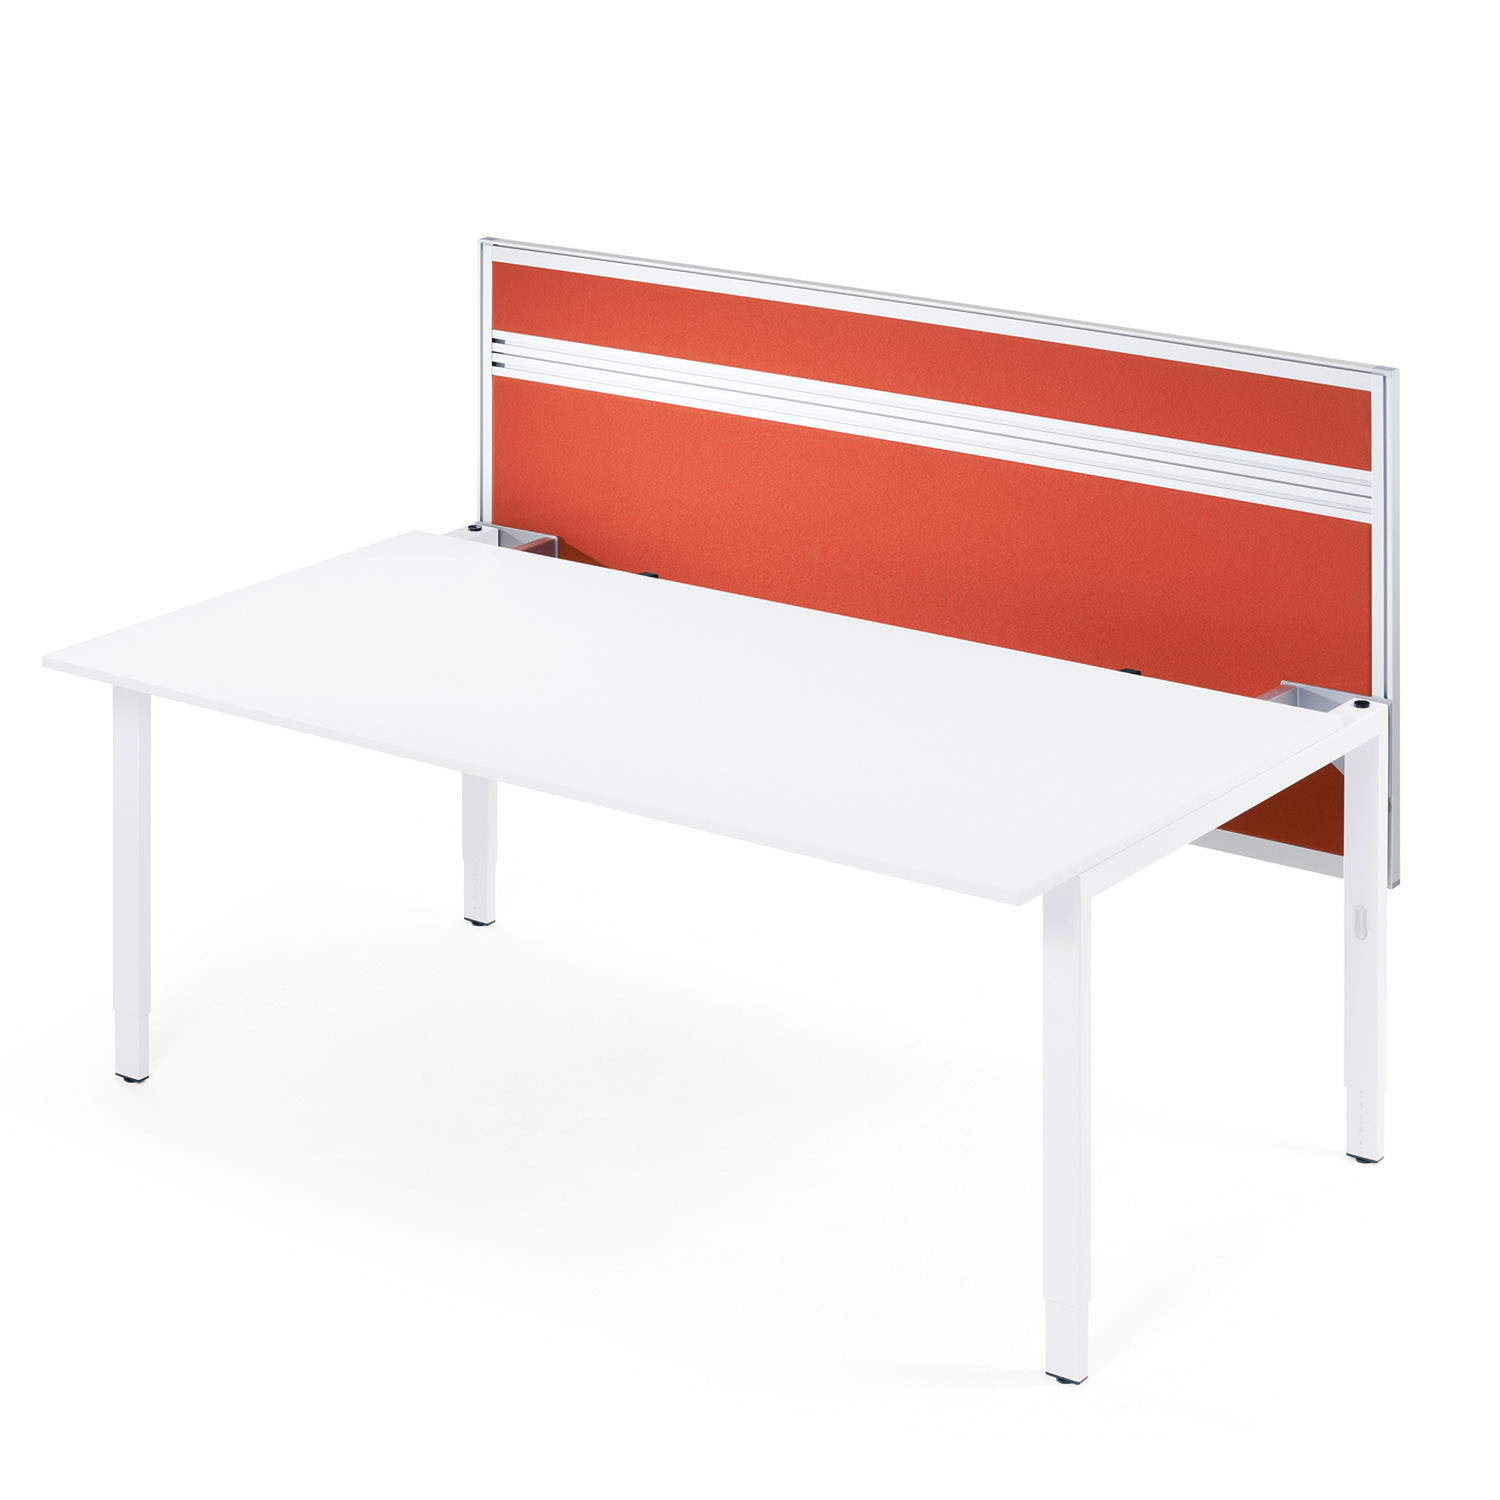 Attention 4 Office Bench Desks